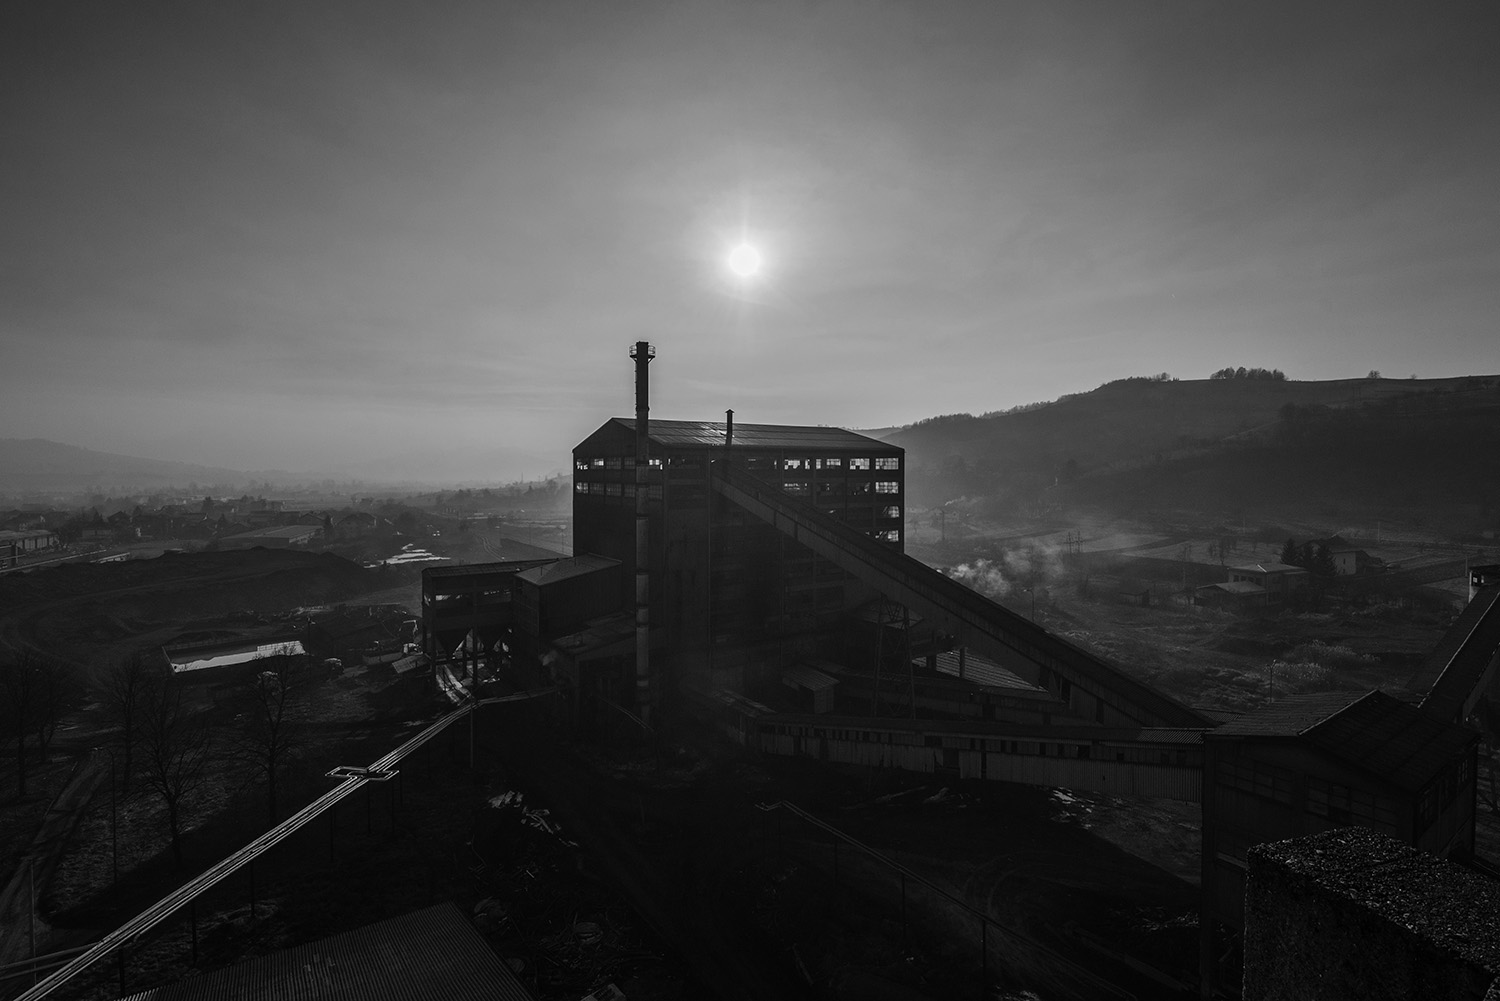 View of part of the Brown Coal Mine Breza where they doing the technological process of separation and washing of coal for medium and large pieces of coal. The whole technological process is fully mechanized.